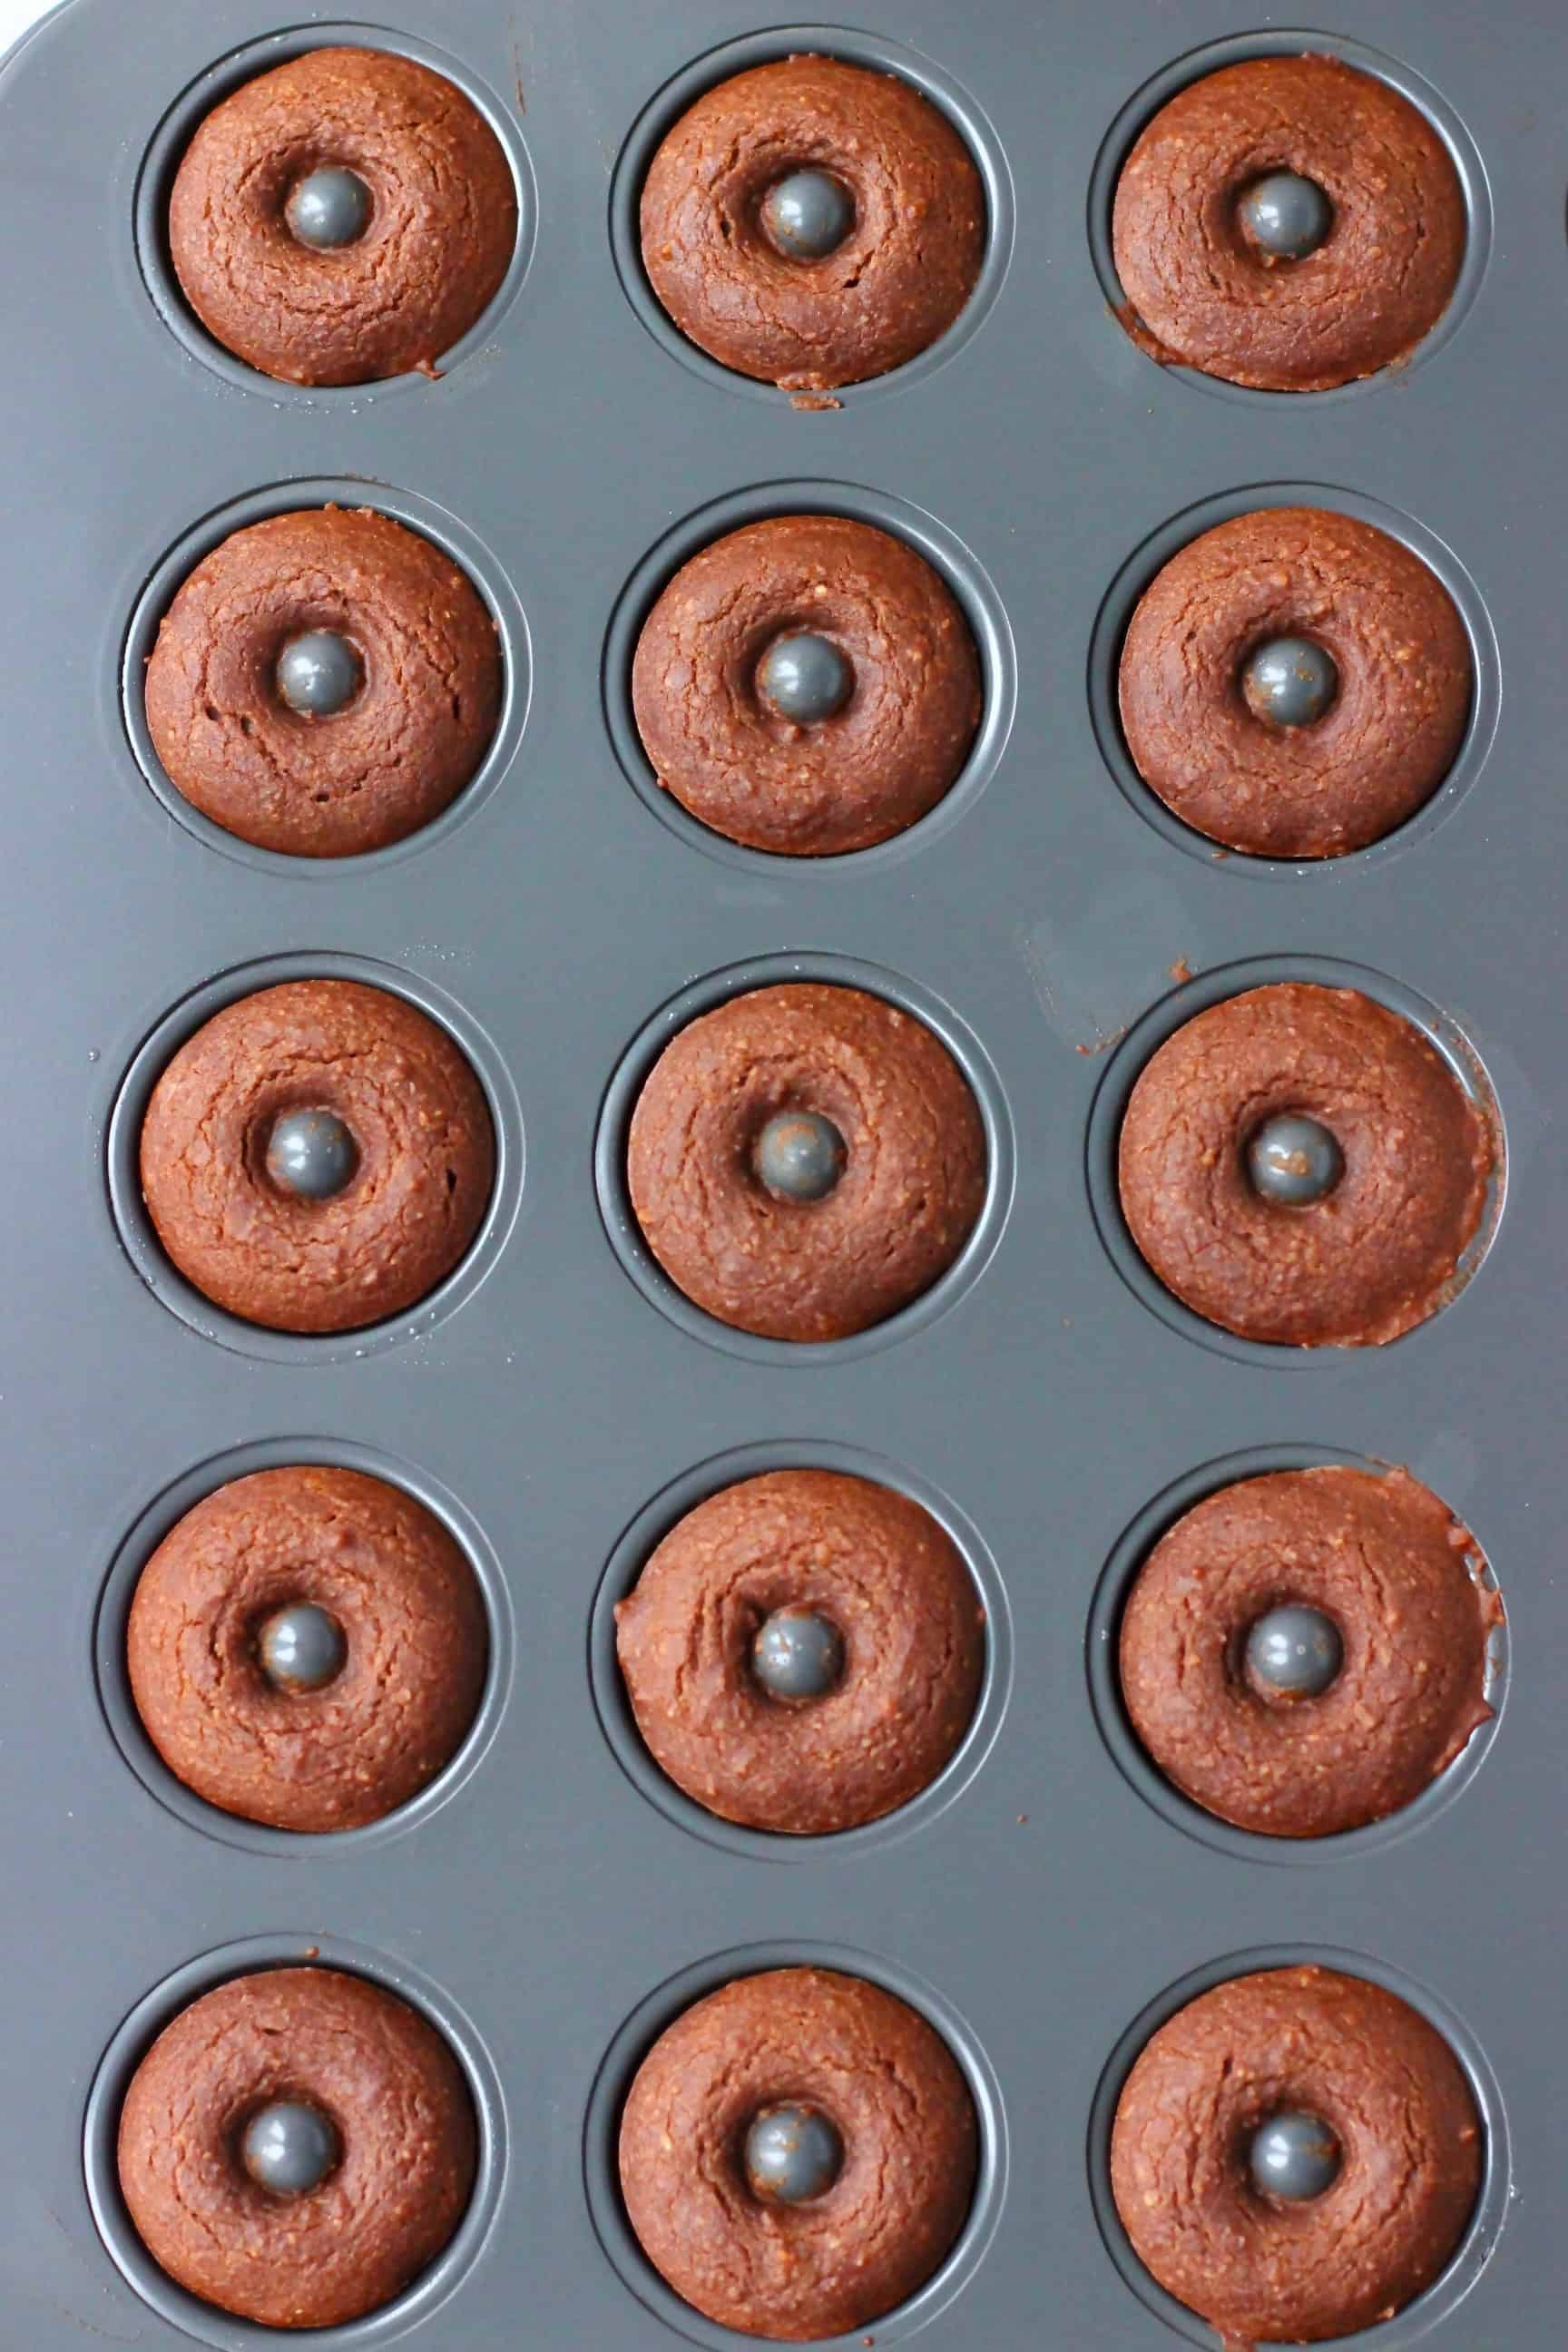 Cooked chocolate donuts in a mini donut tin